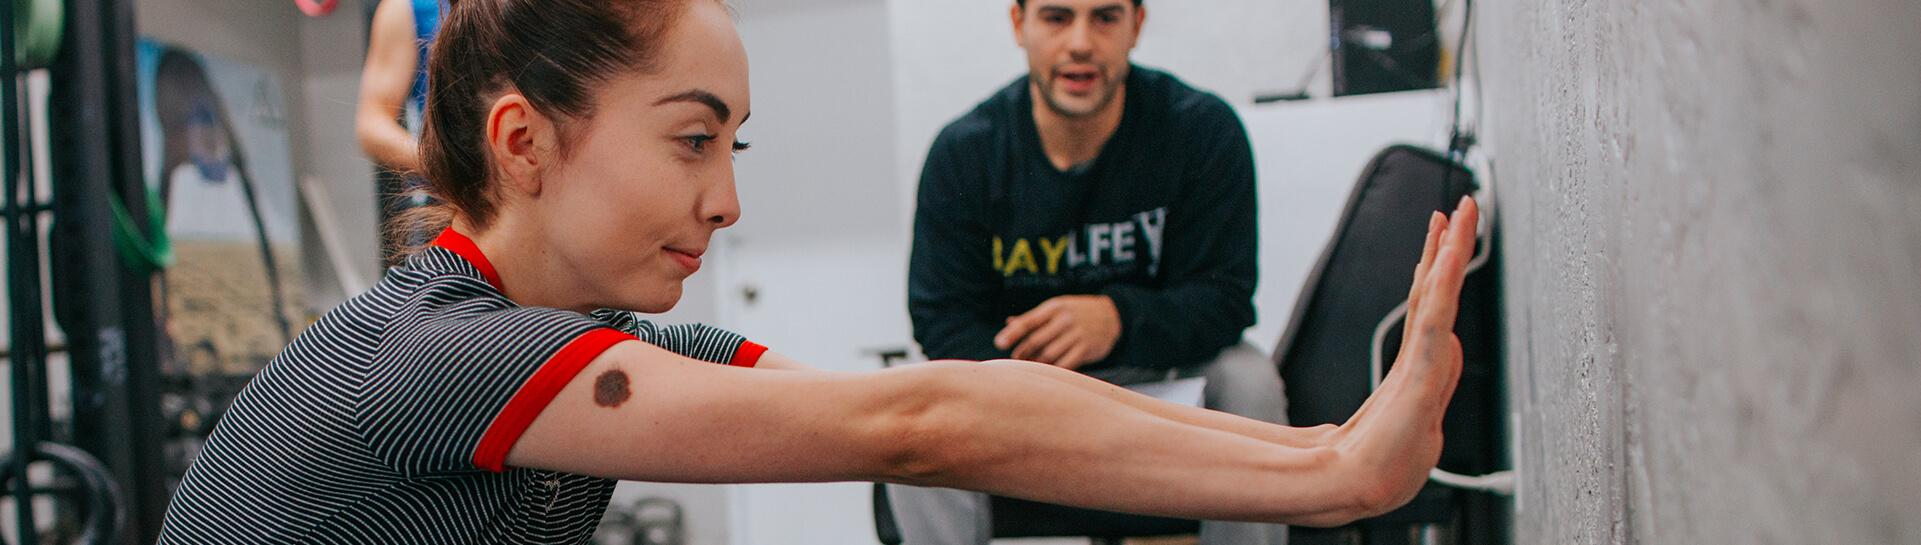 A person doing exercises with a trainer